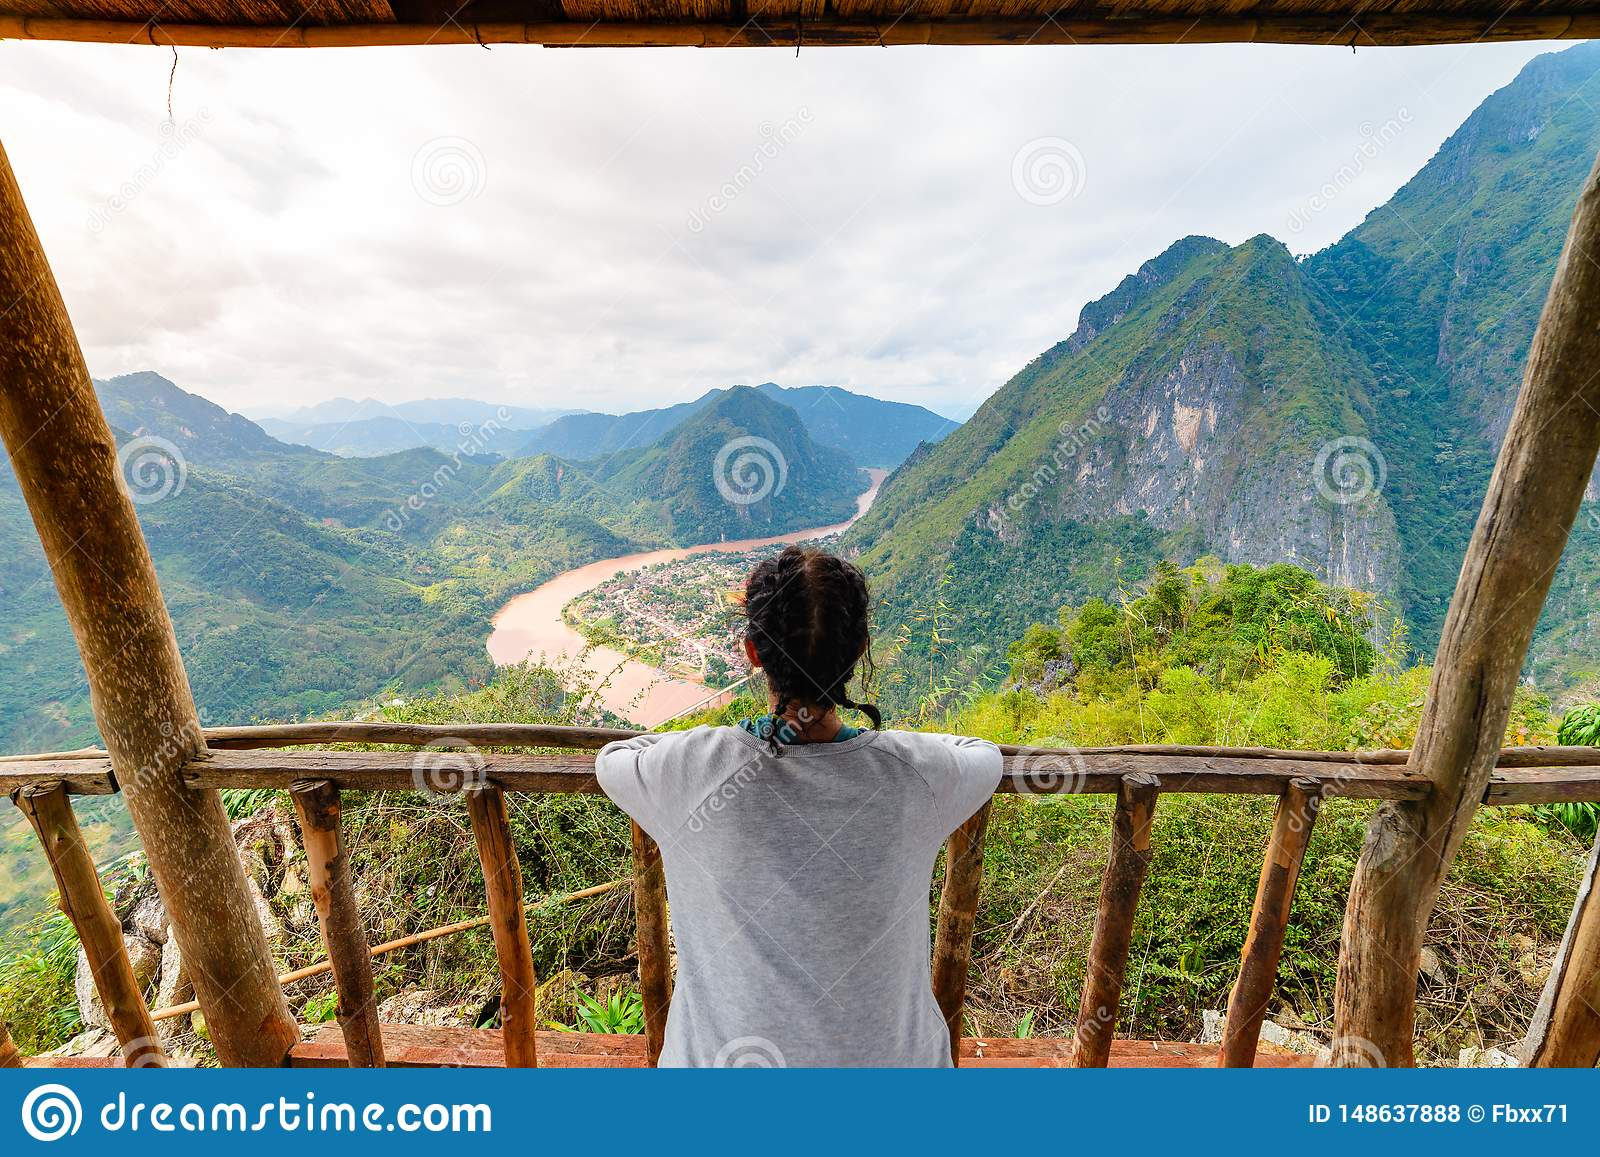 Woman on wooden balcony conquering mountain top at Nong Khiaw Nam Ou River valley Laos mature people traveling millenials concept